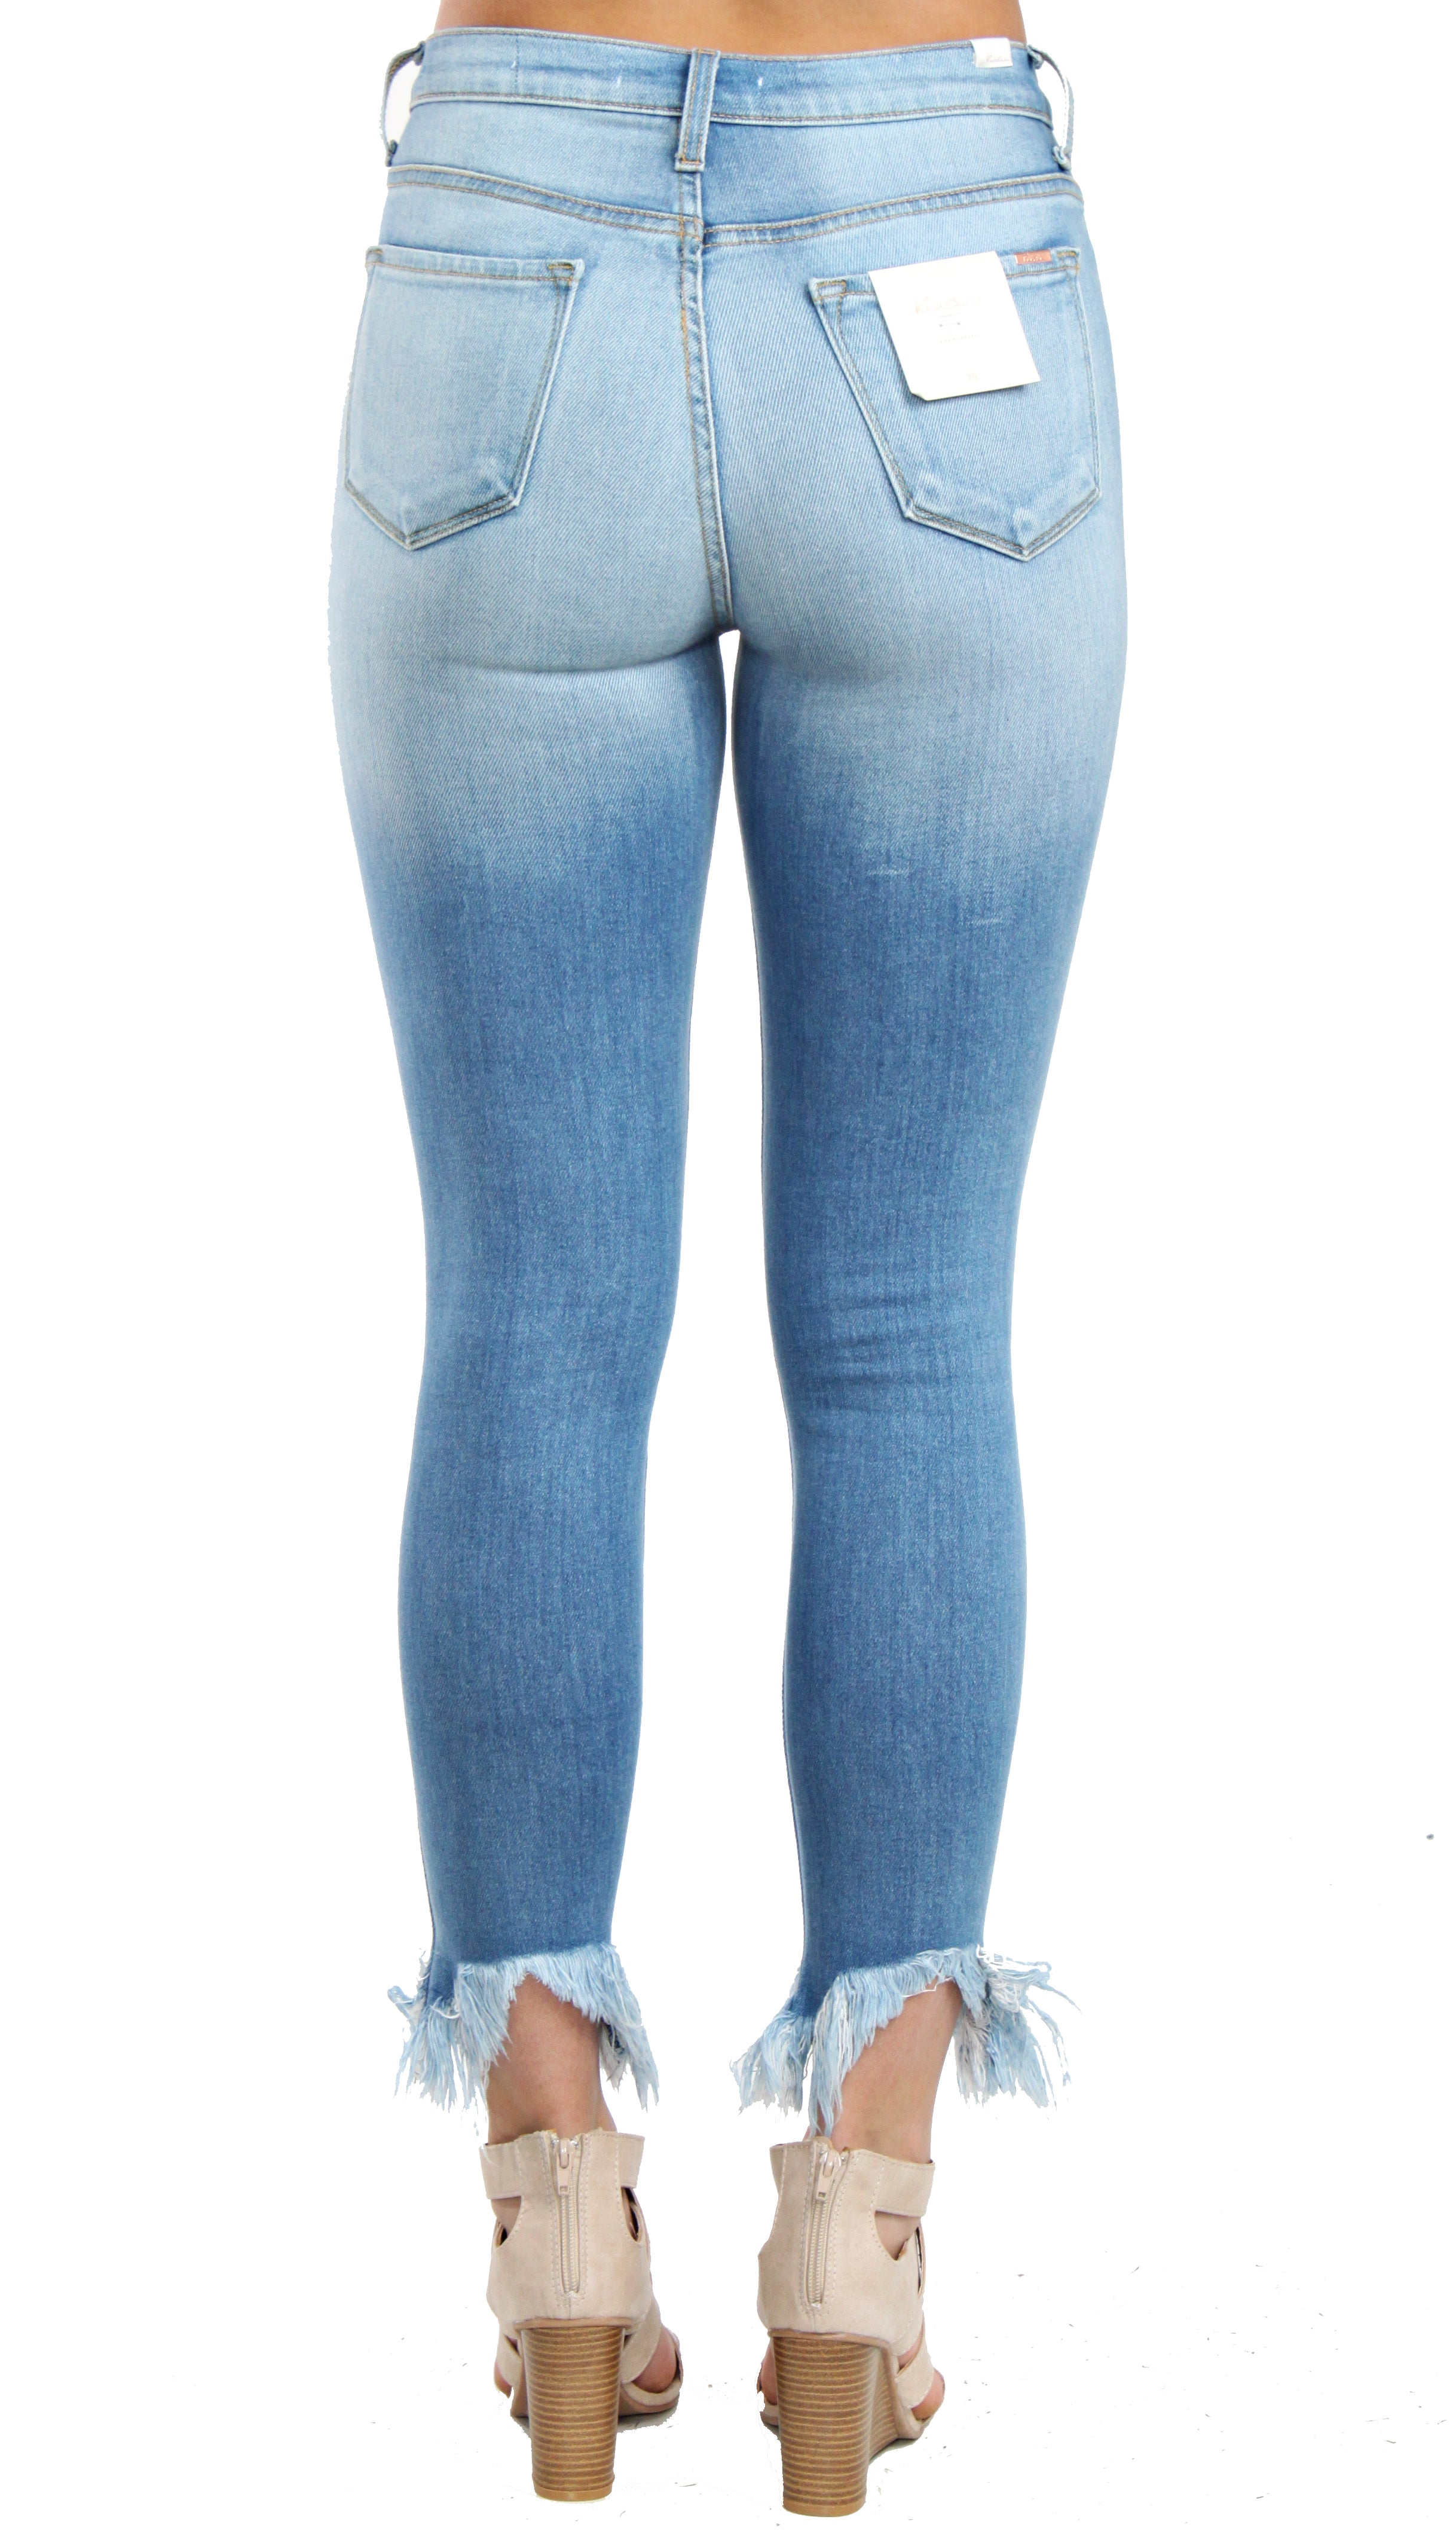 KanCan Premier Distressed Jeans- Light Wash Denim